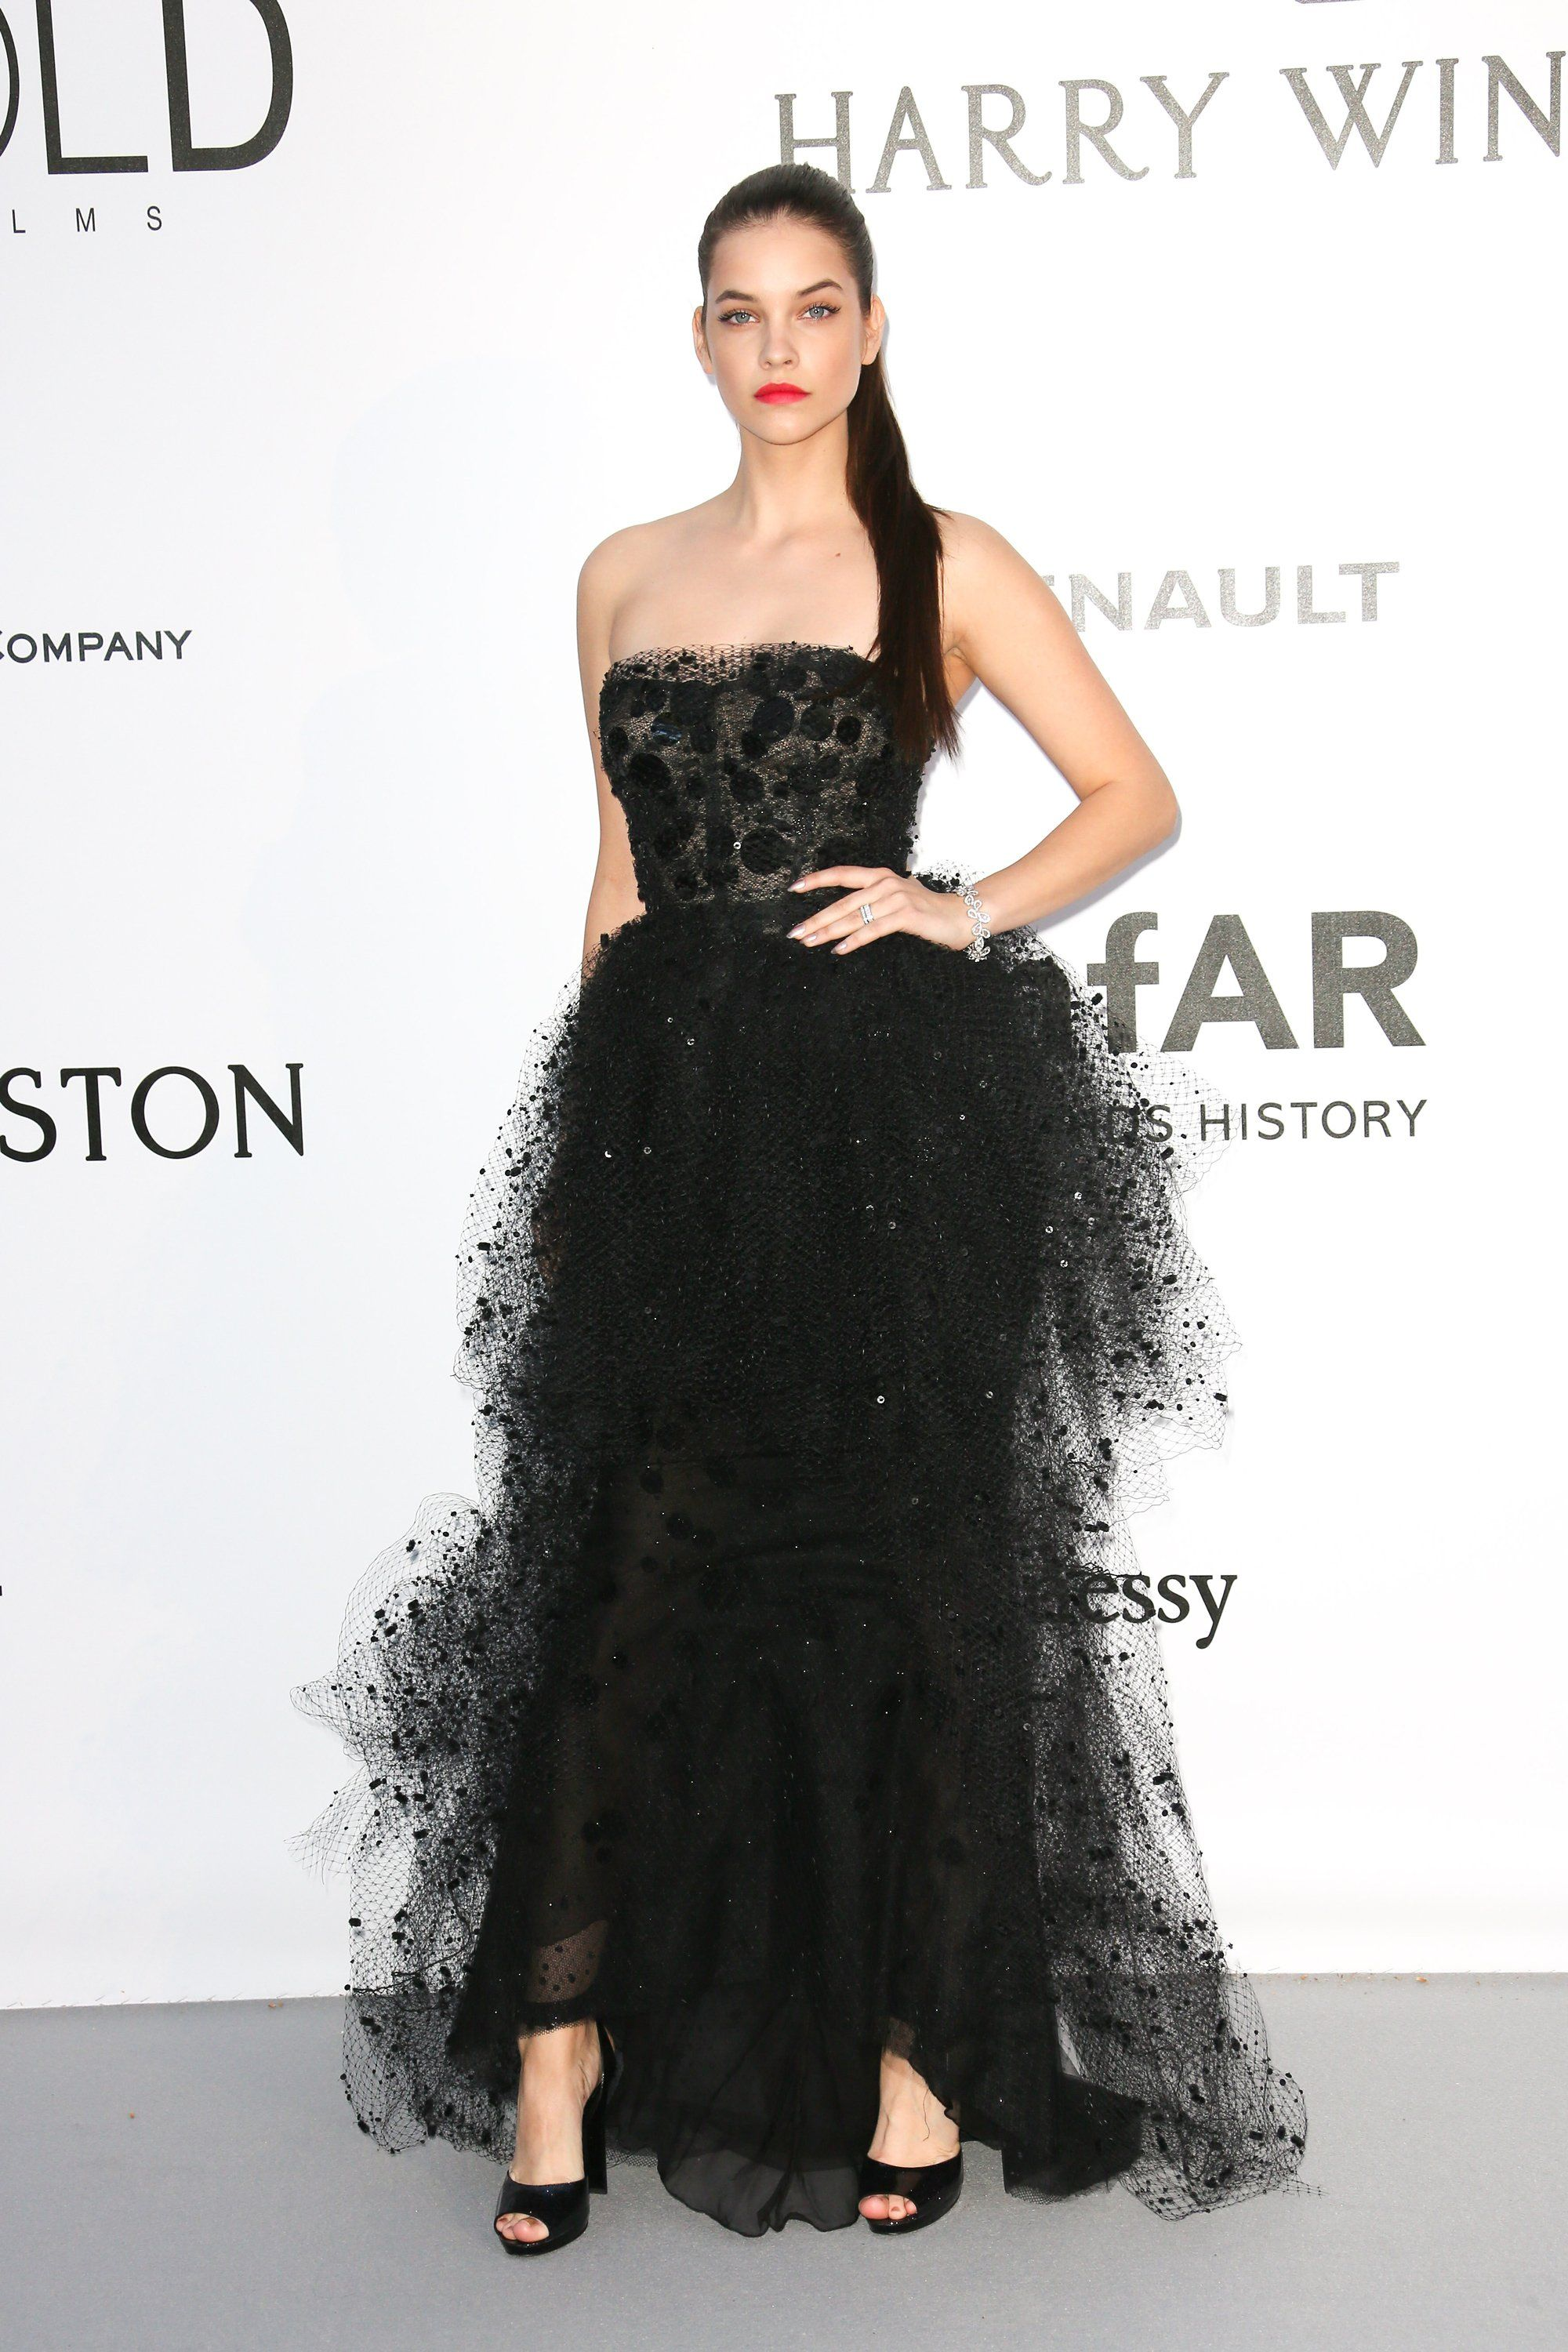 Katy Perry Roter Teppich At This Years Cannes Film Festival Models Ruled The Red